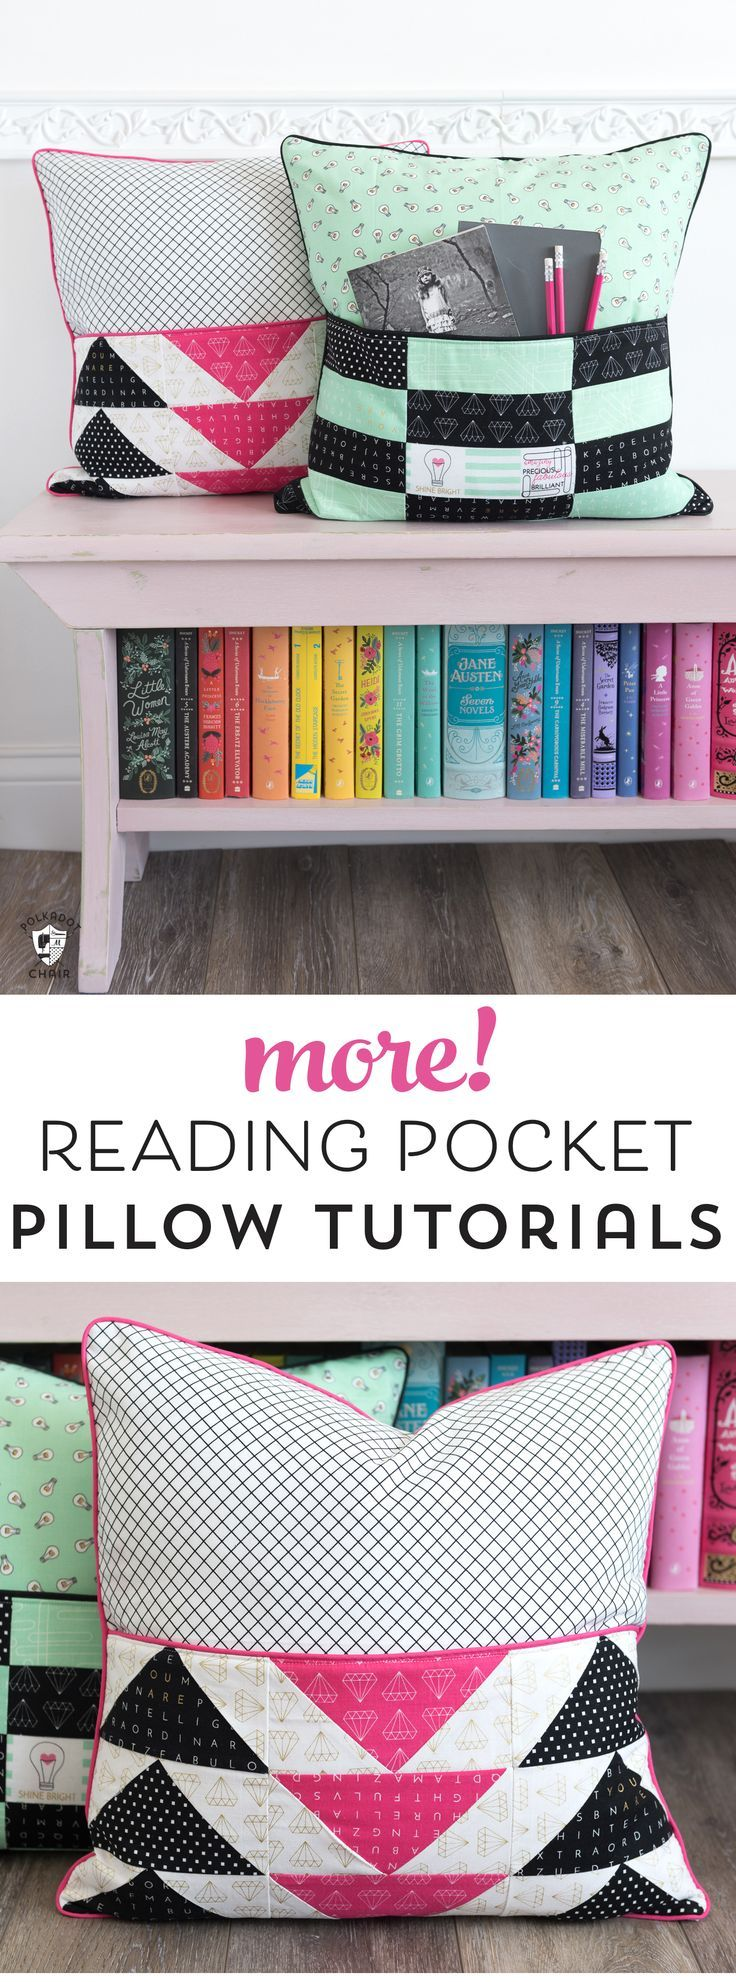 Caitlyn's Room...reading pillows with pockets....book shelf bench